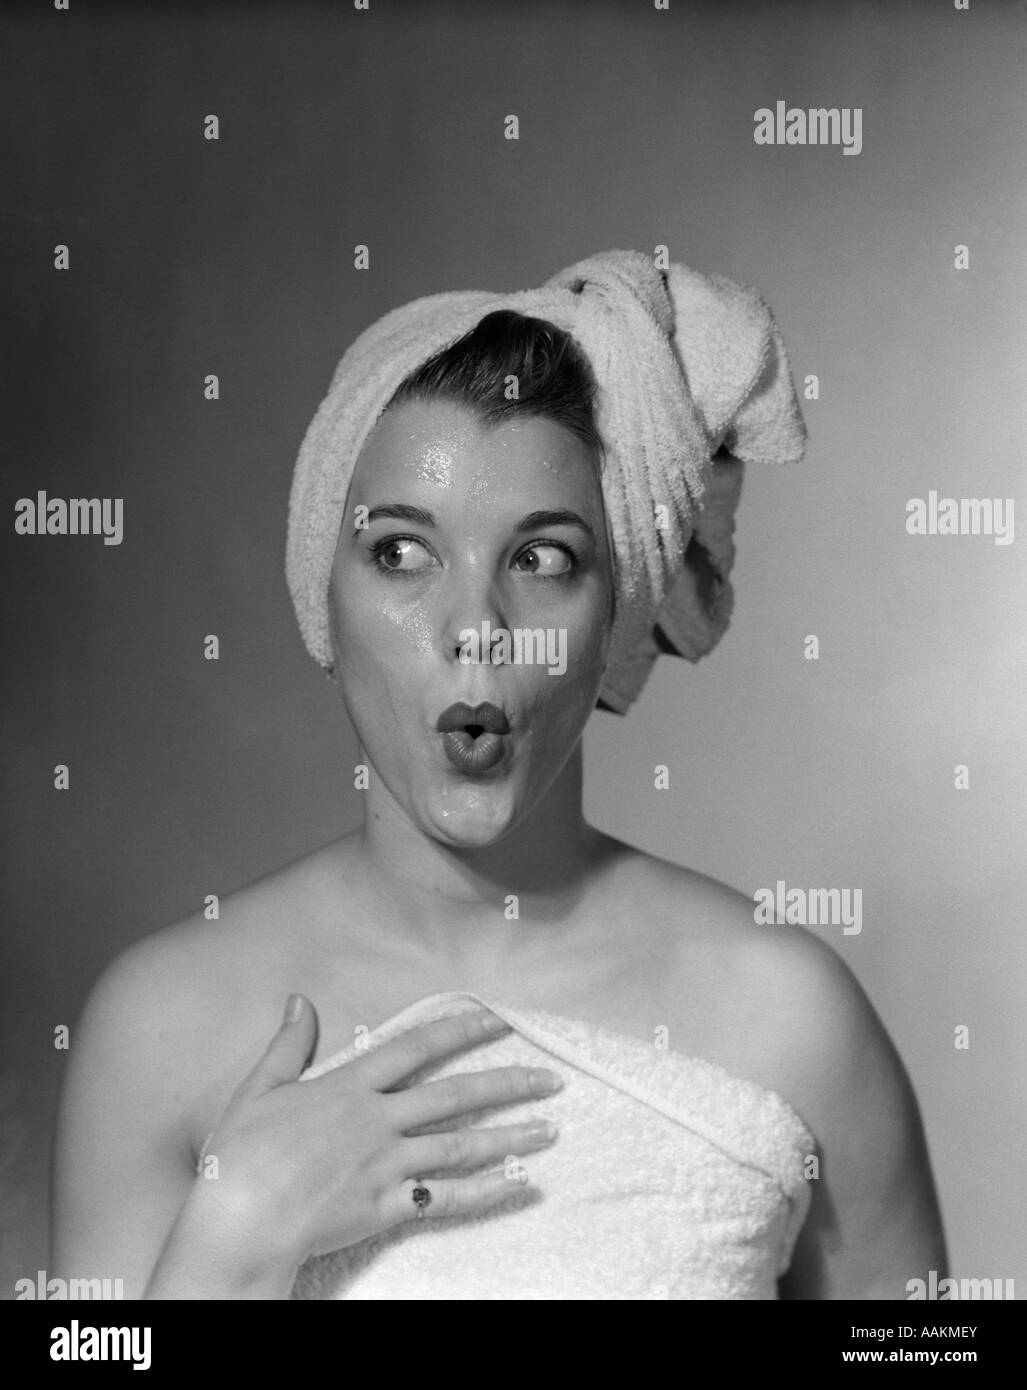 1950s WOMAN MAKING FUNNY FACE EXPRESSION WEARING TOWEL ON HEAD LOOKING OFF TO THE SIDE - Stock Image